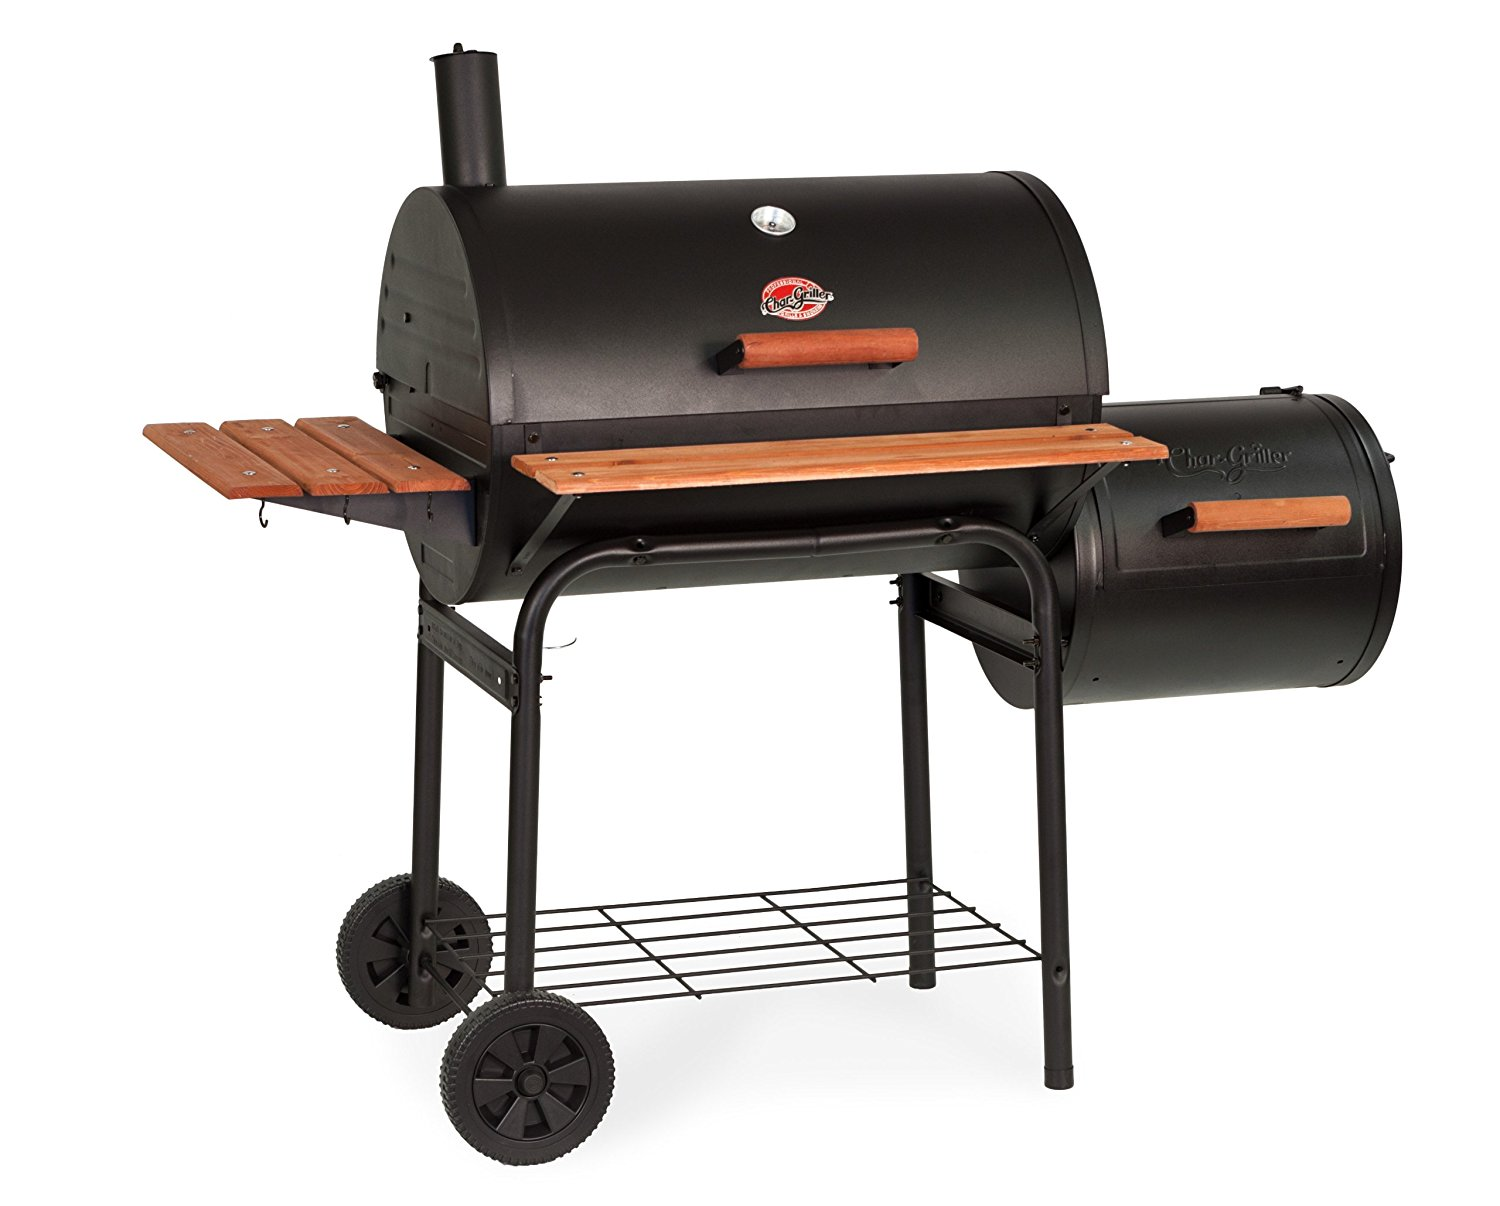 BBQ Cookers For Sale - Buy Electric, Charcoal and Propane Grills At Best Prices